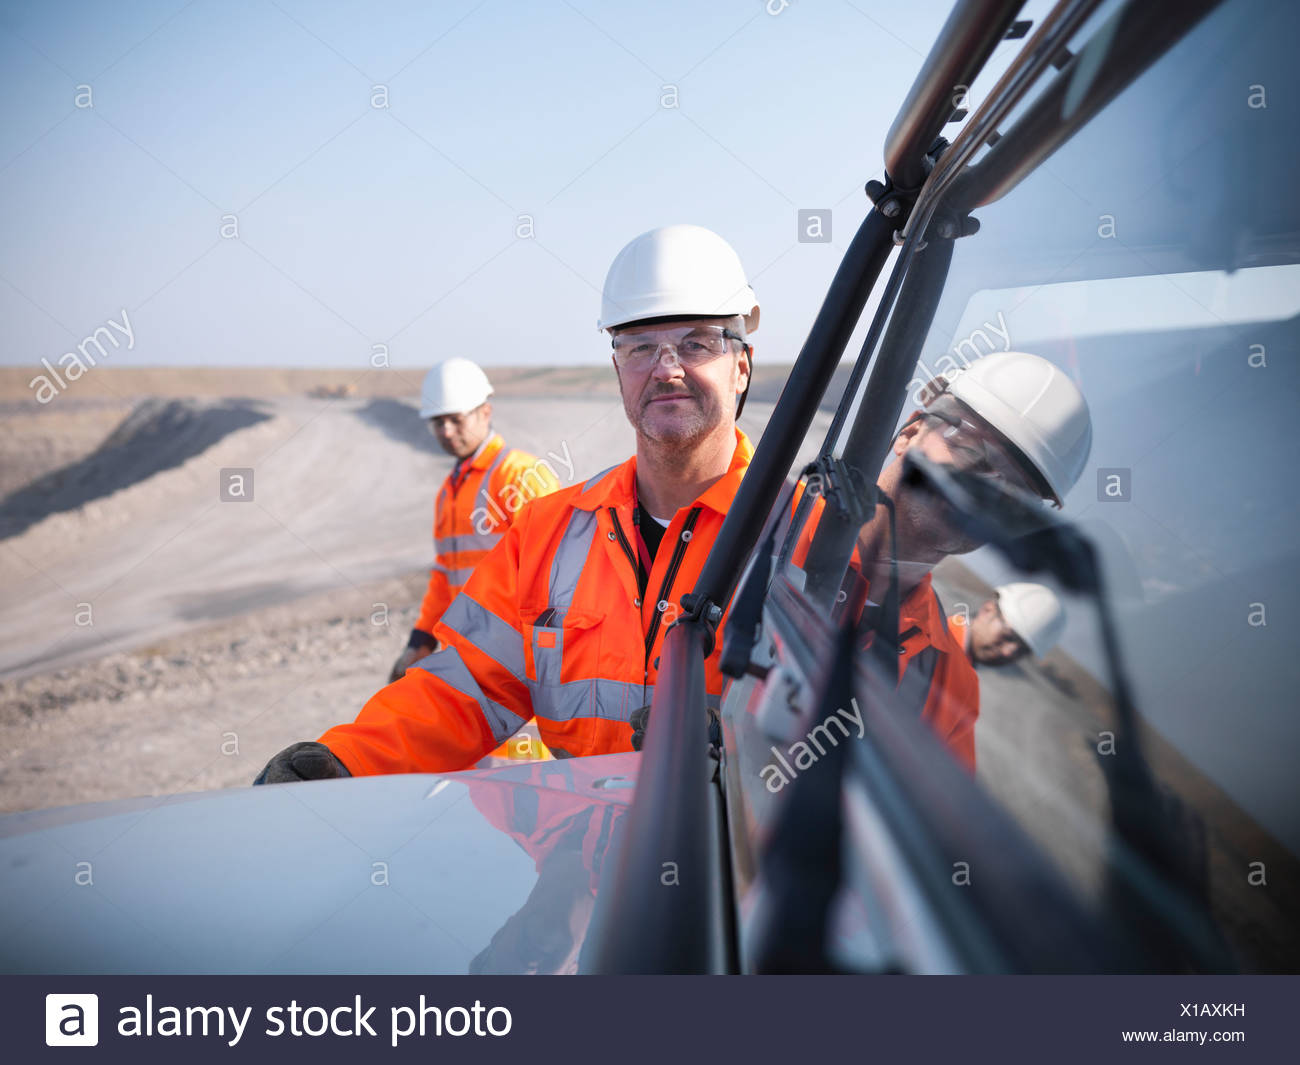 Workers with equipment in coal mine - Stock Image